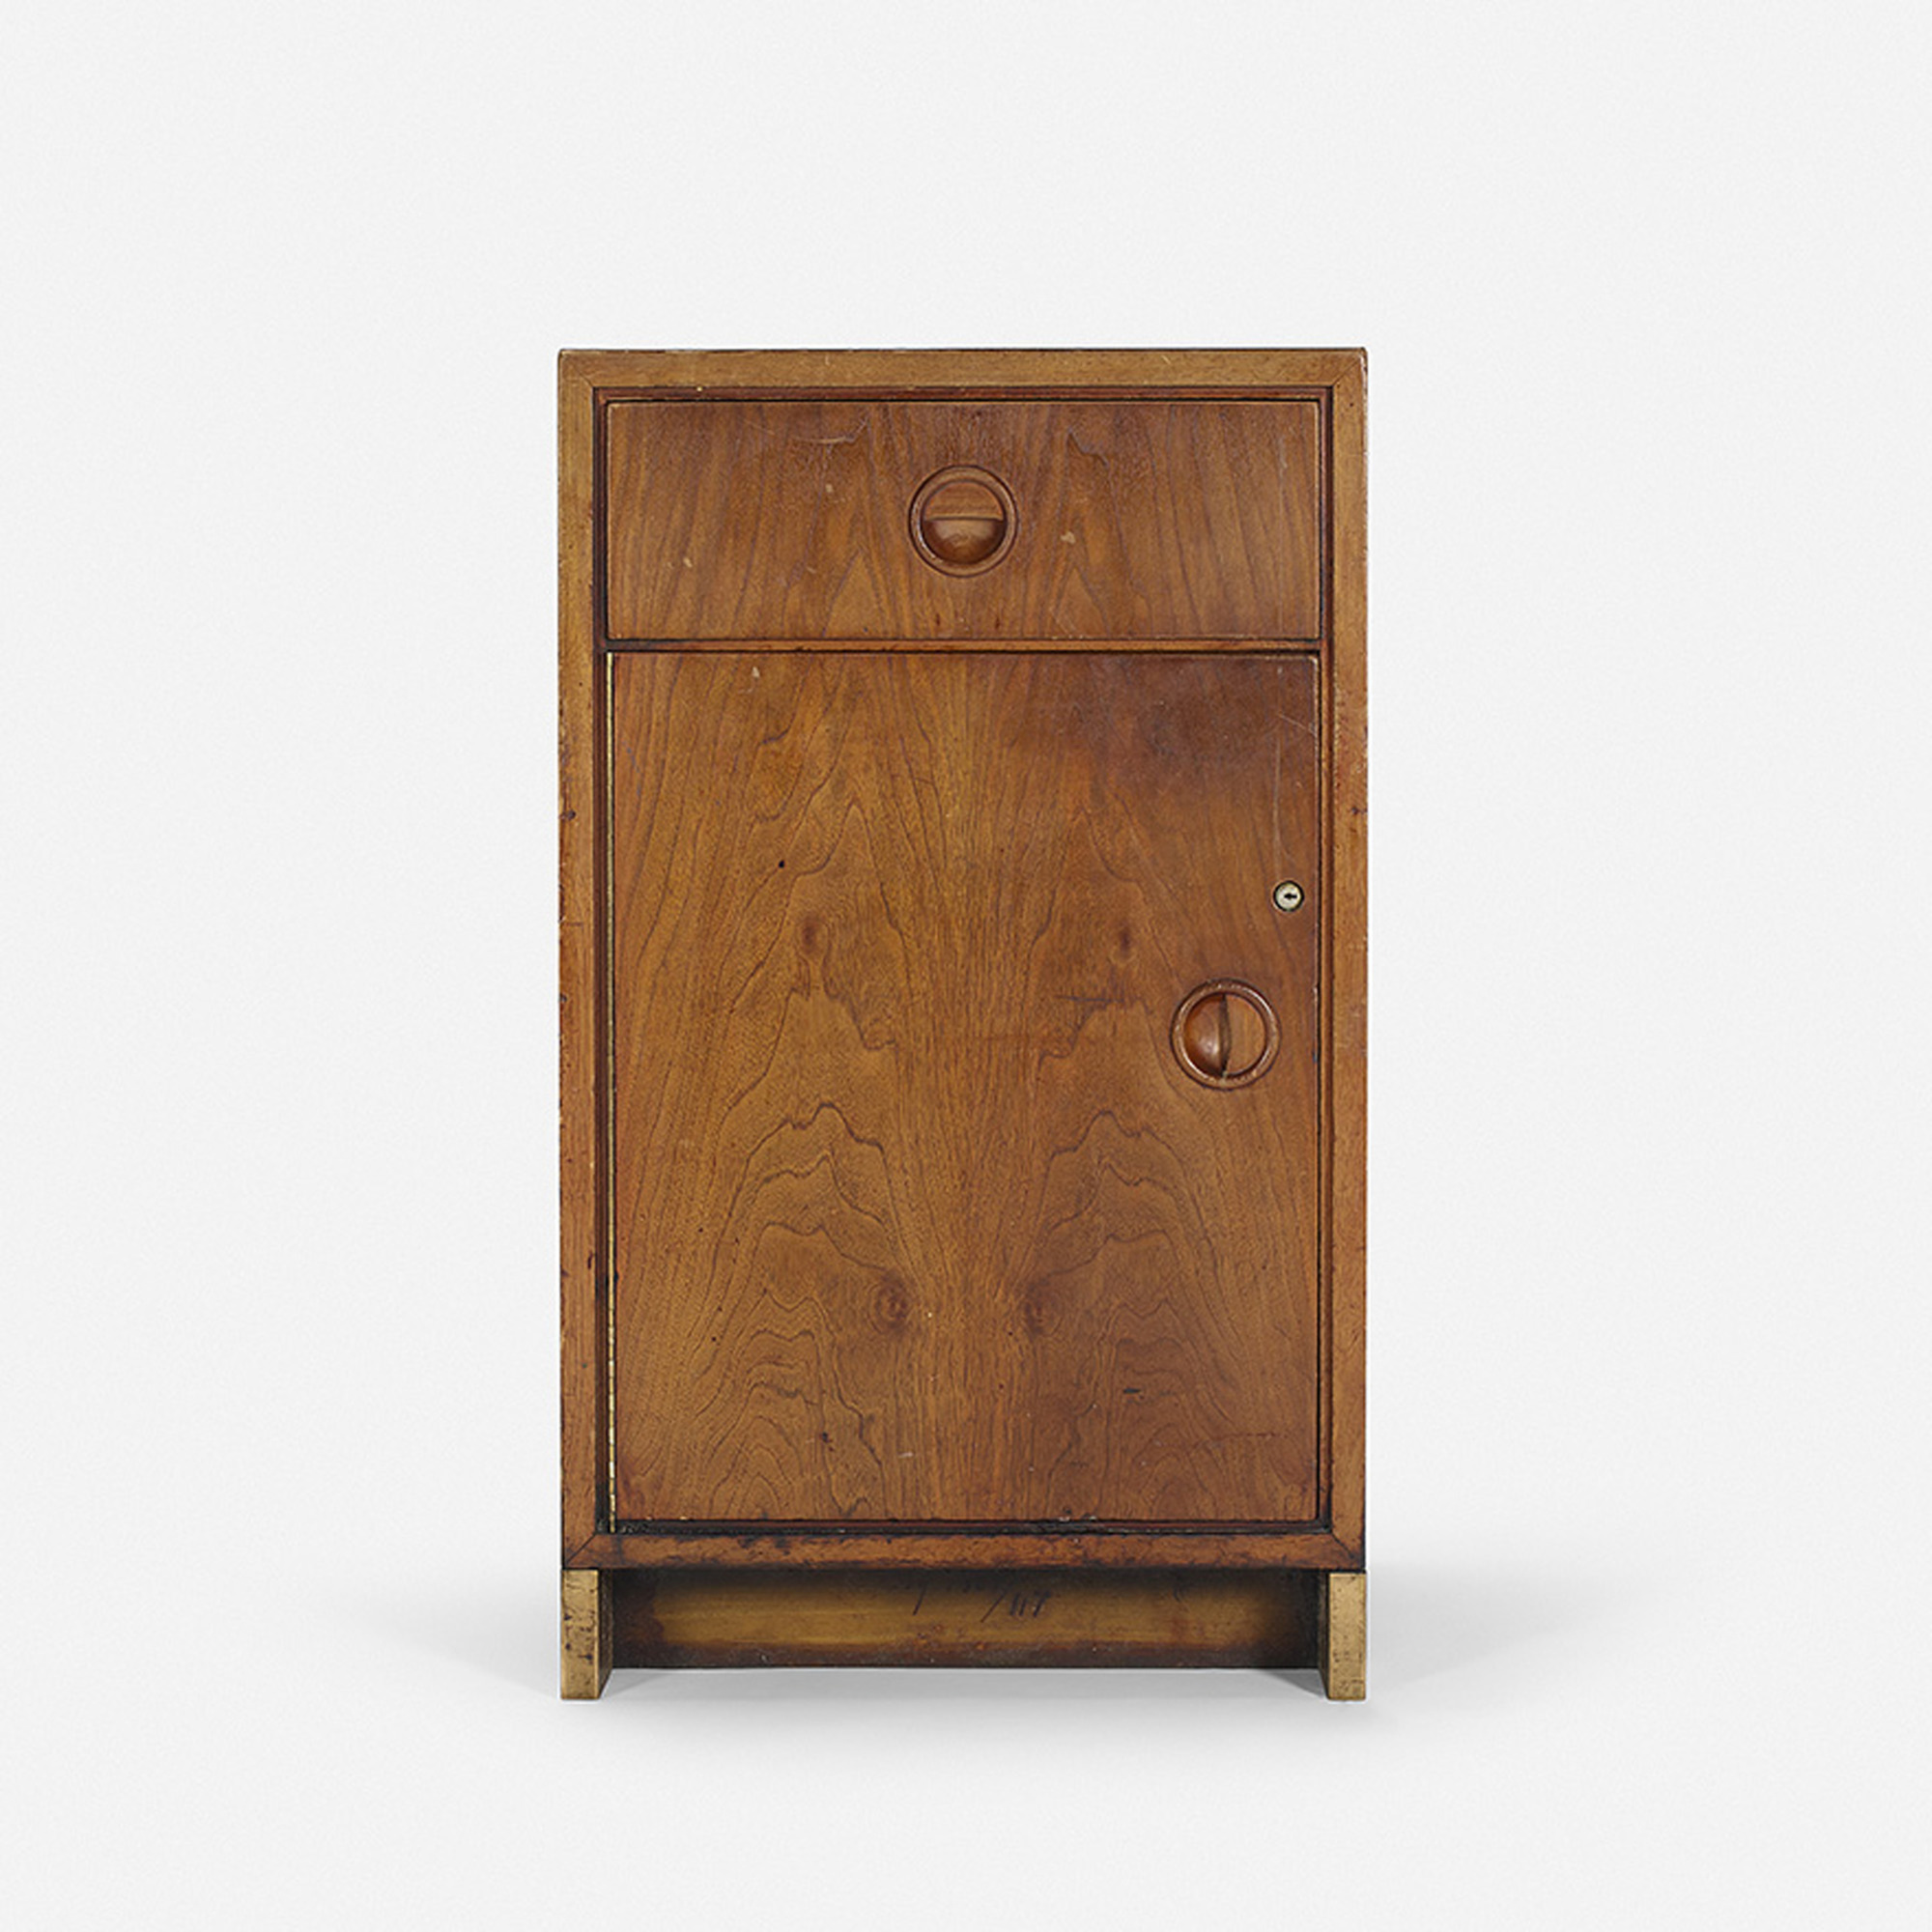 136: Philip Johnson Associates / Serving cabinet from the bar in the Grill Room (1 of 1)